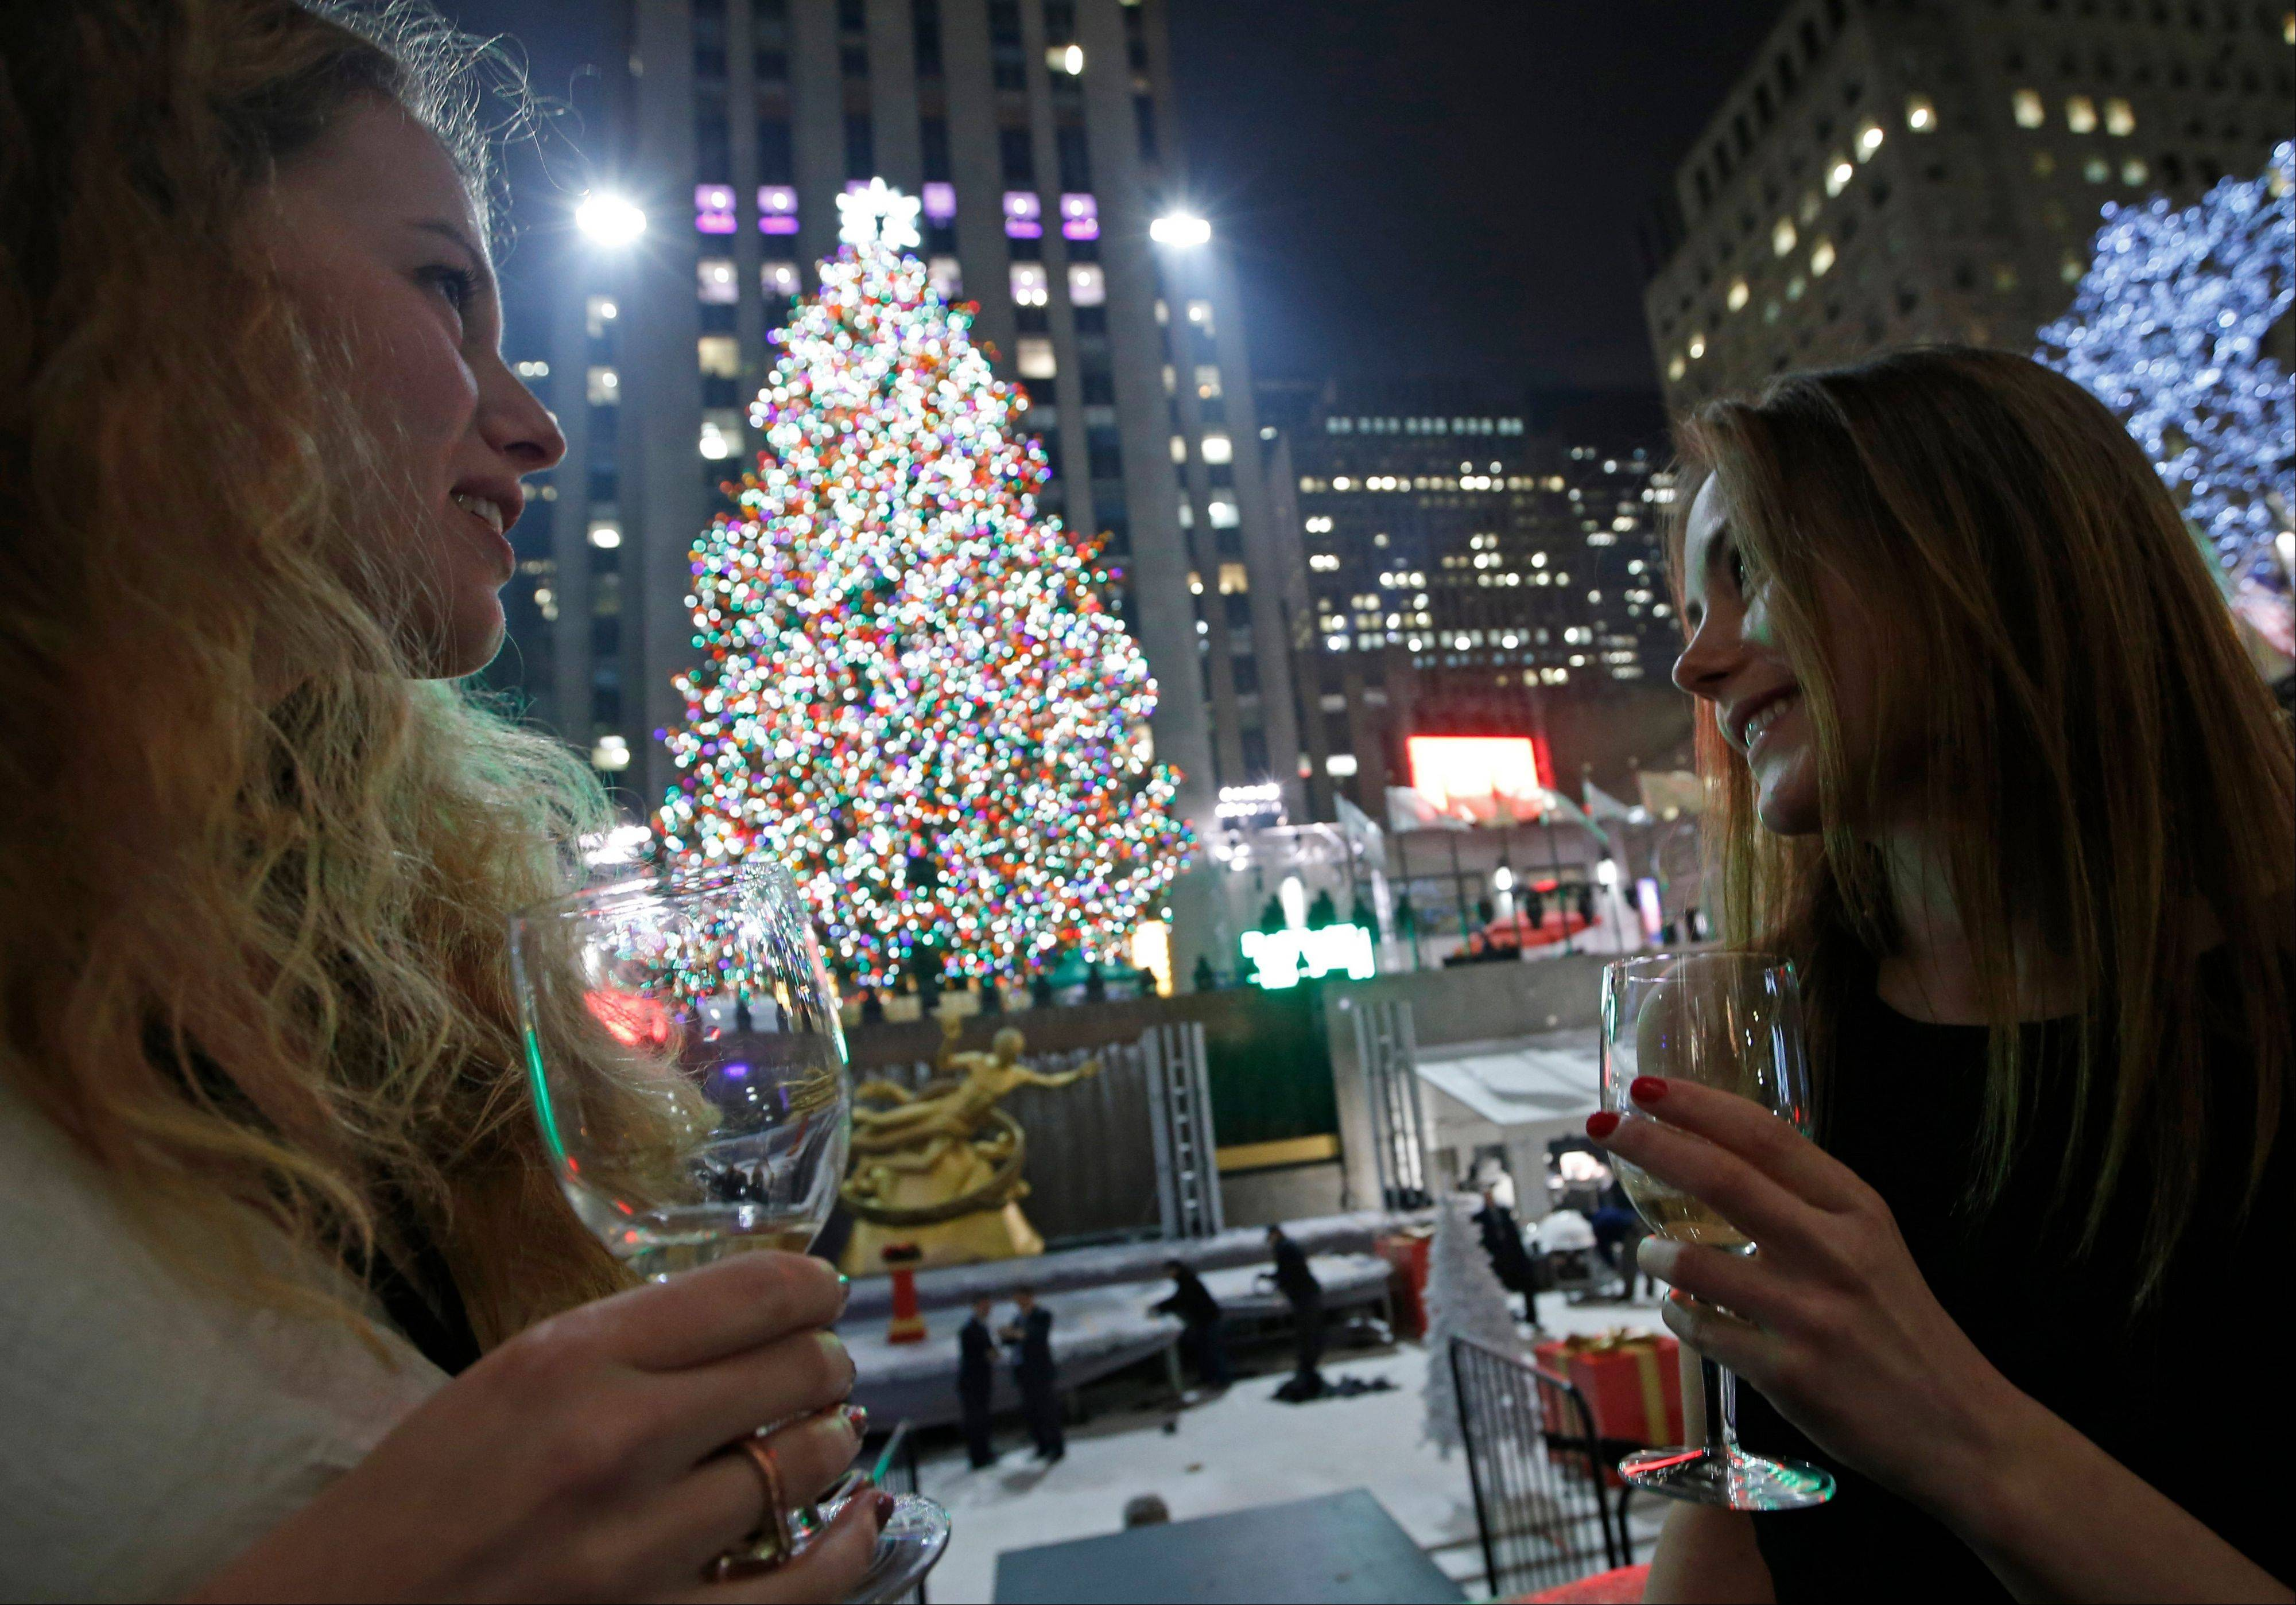 Anna Ladner, left, and Vanja Ojes Dahlberg sip Champagne in front of the Rockefeller Center Christmas tree in New York. Some 45,000 energy-efficient LED lights adorn the 76-foot tree.